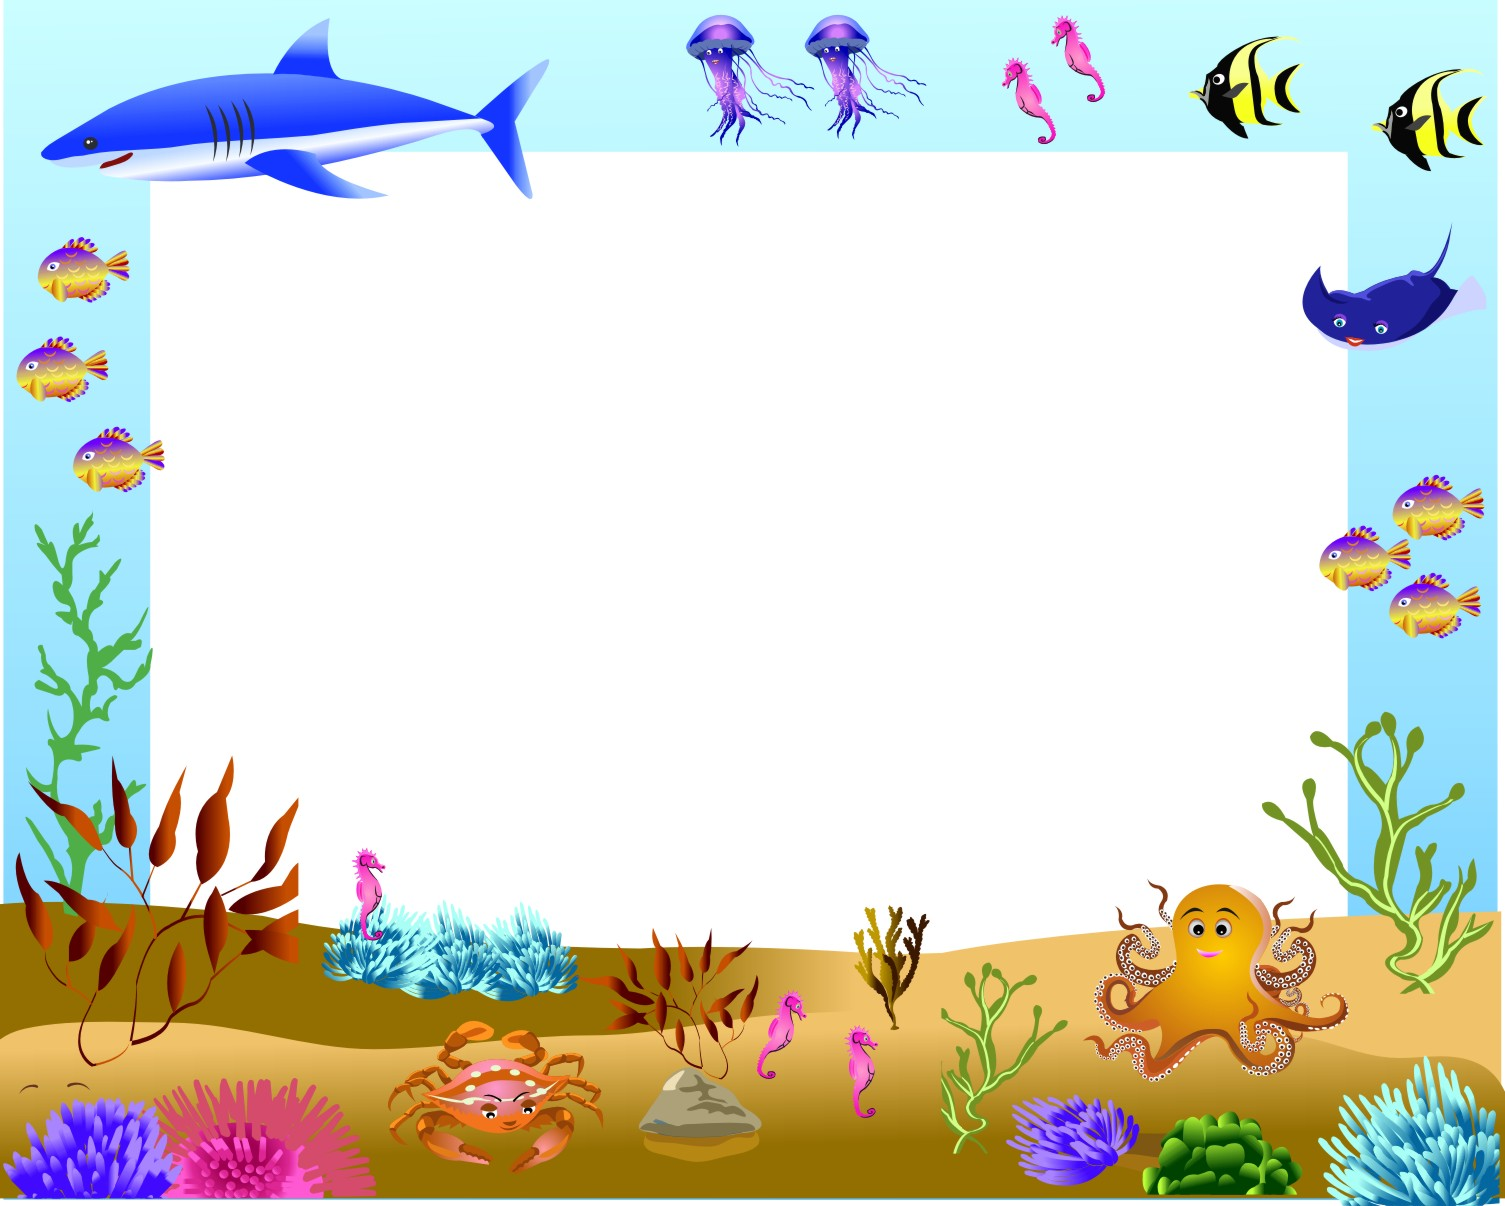 Free Sea Border Cliparts, Download Free Clip Art, Free Clip Art on.